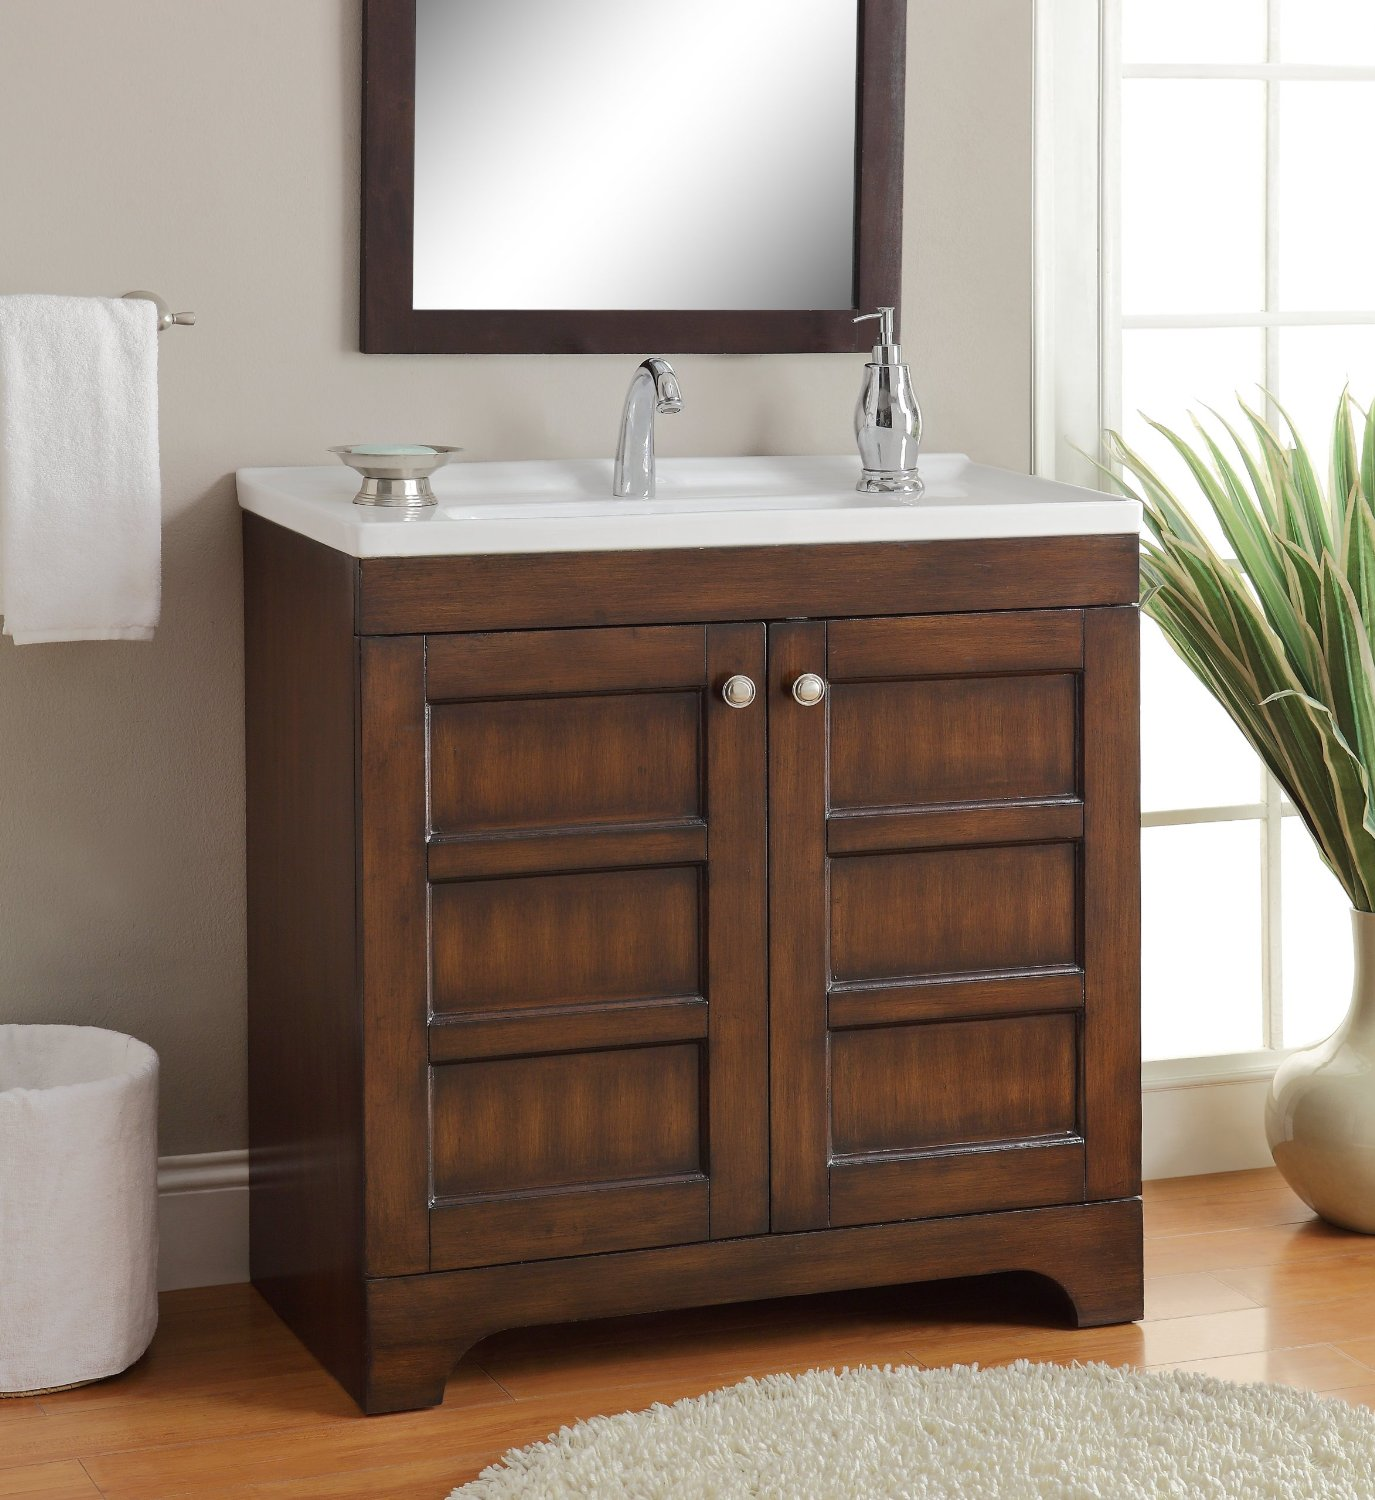 Adelina 32 inch Contemporary Bathroom VanityAdelina 32 inch Contemporary Bathroom Vanity  Vitreous china top  . 32 Inch Bathroom Vanity. Home Design Ideas